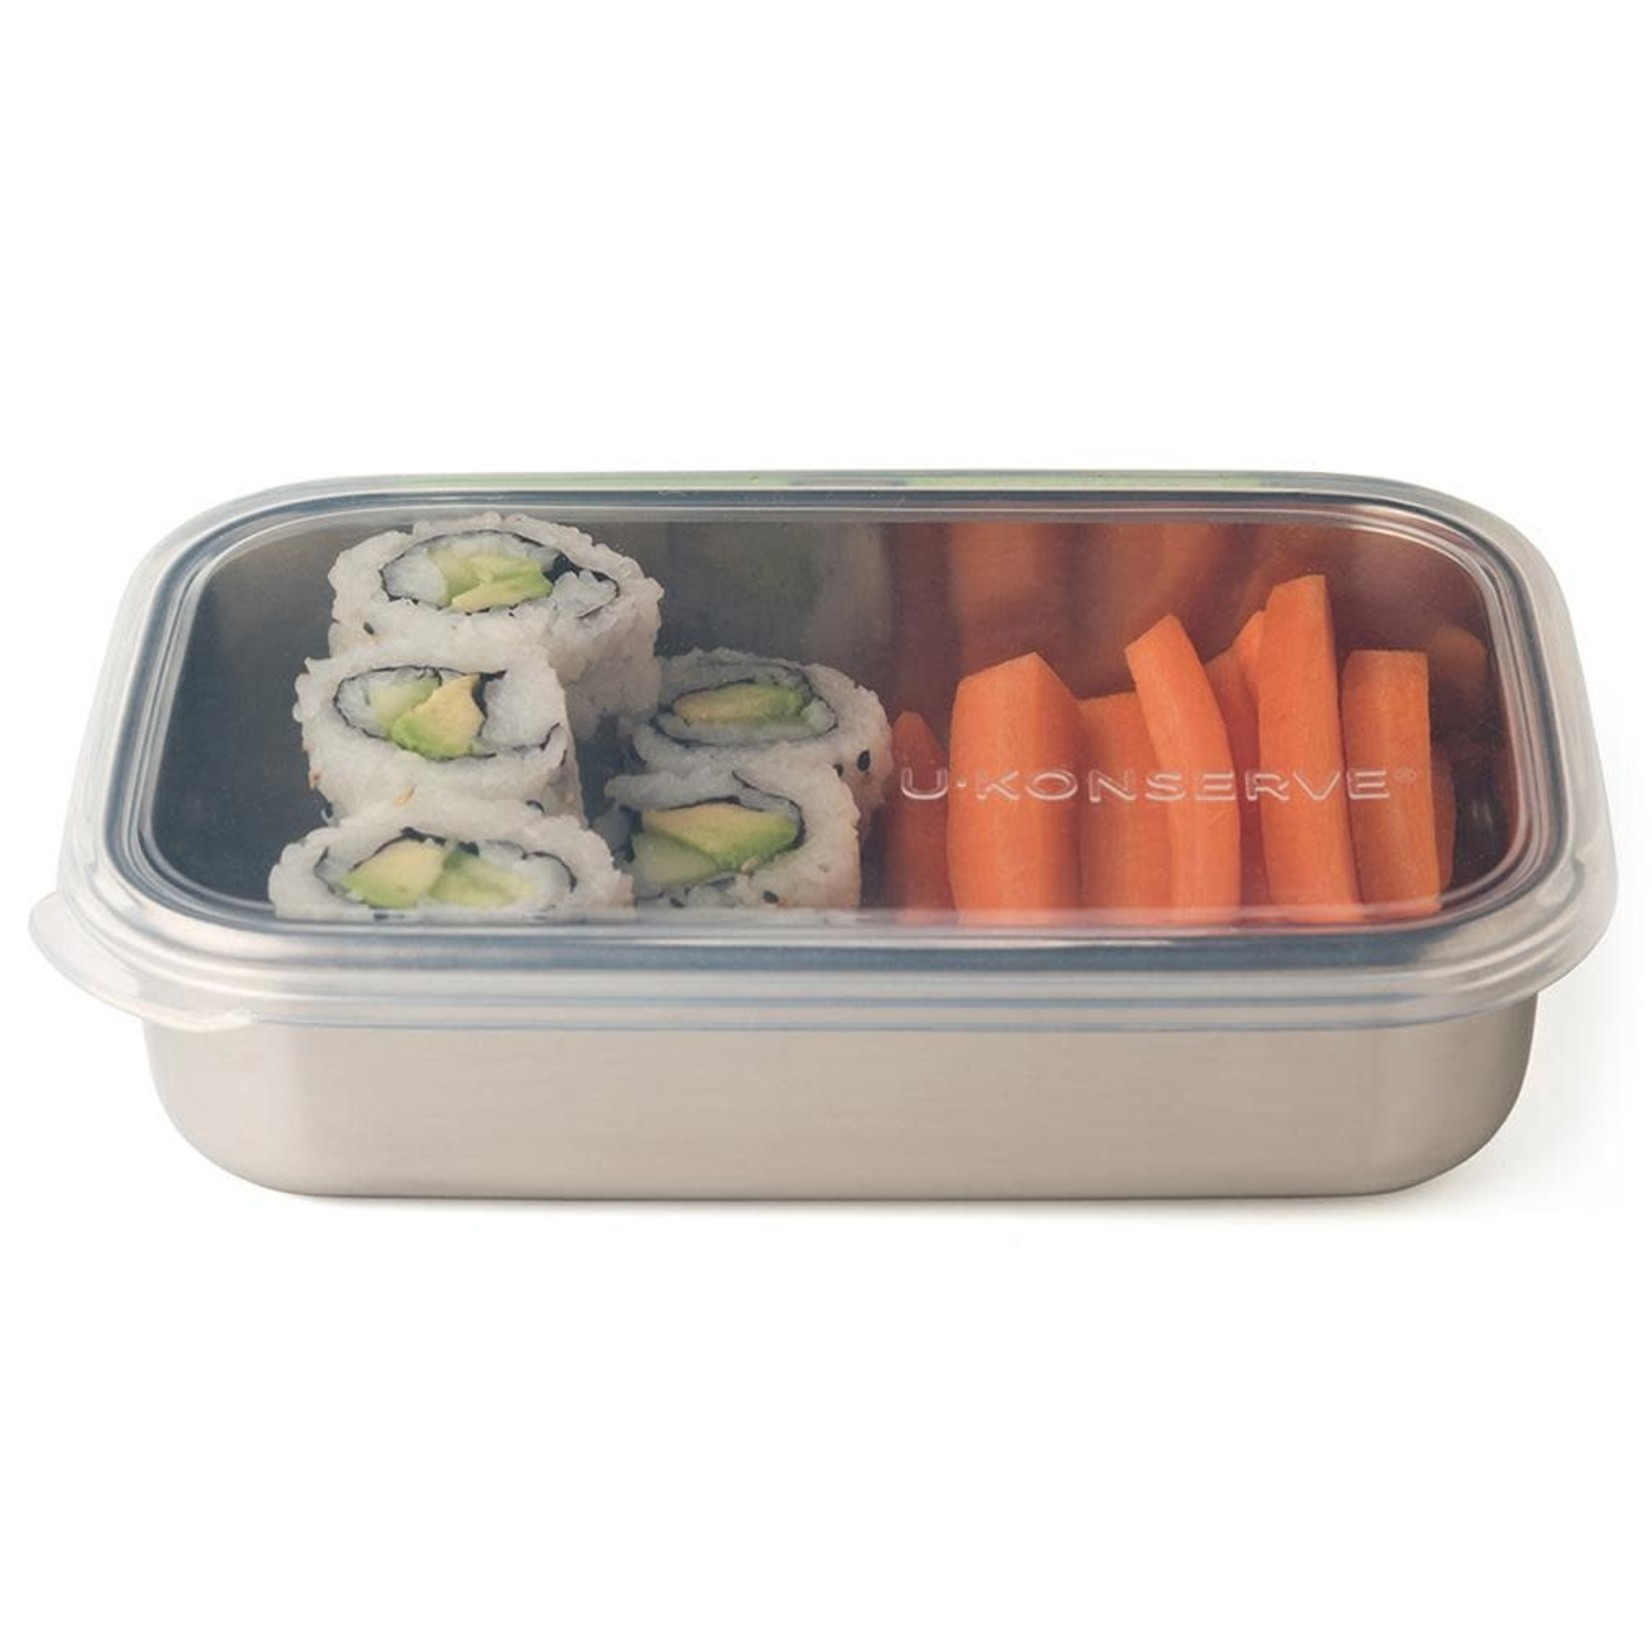 U-KONSERVE Rectangle Container - Clear Silicone (25oz)